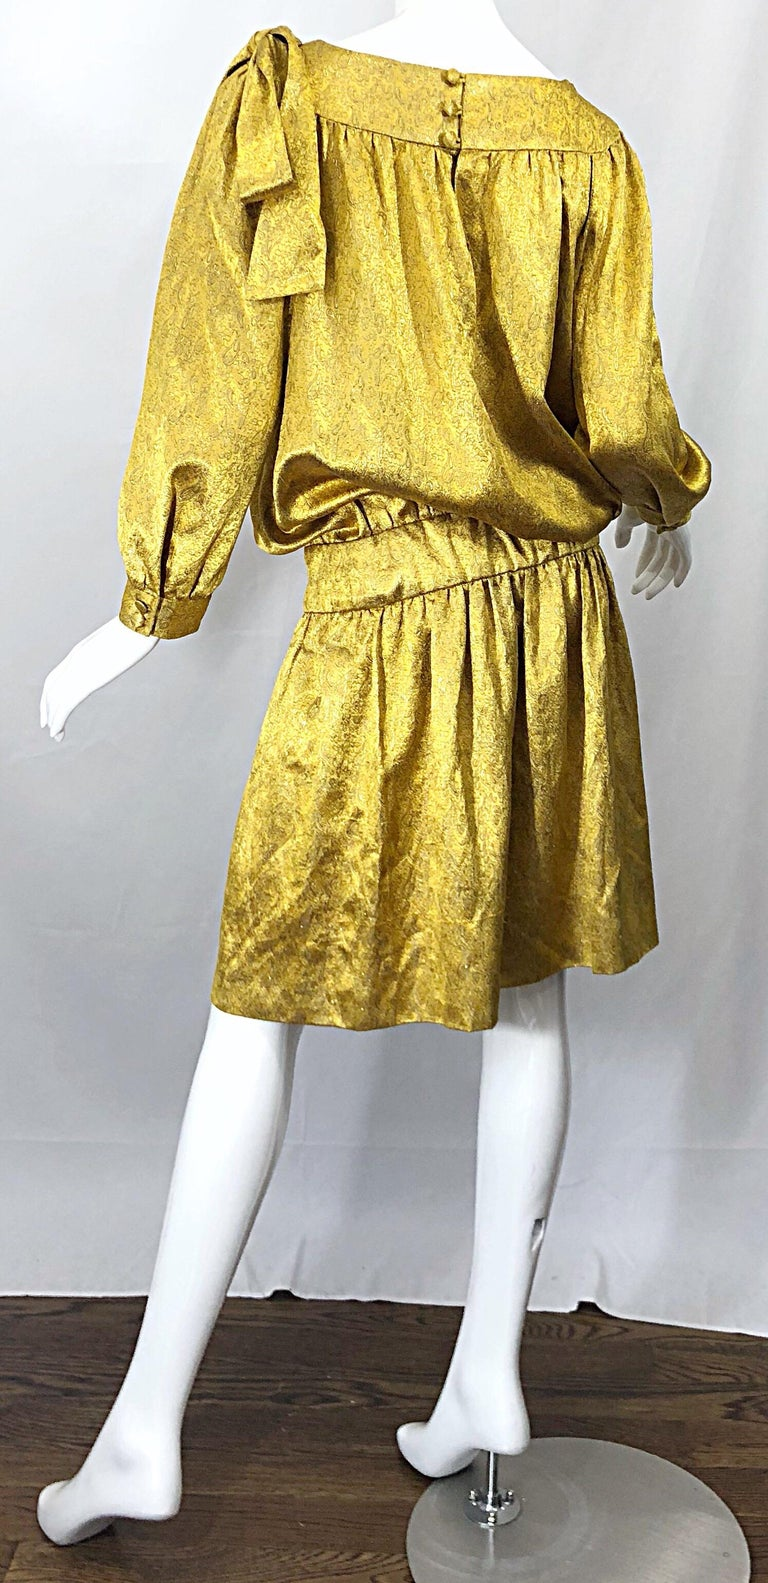 Vintage Brioni Yellow + Gold Silk 1920s Style Drop Waist Dress + Turban Sash For Sale 2